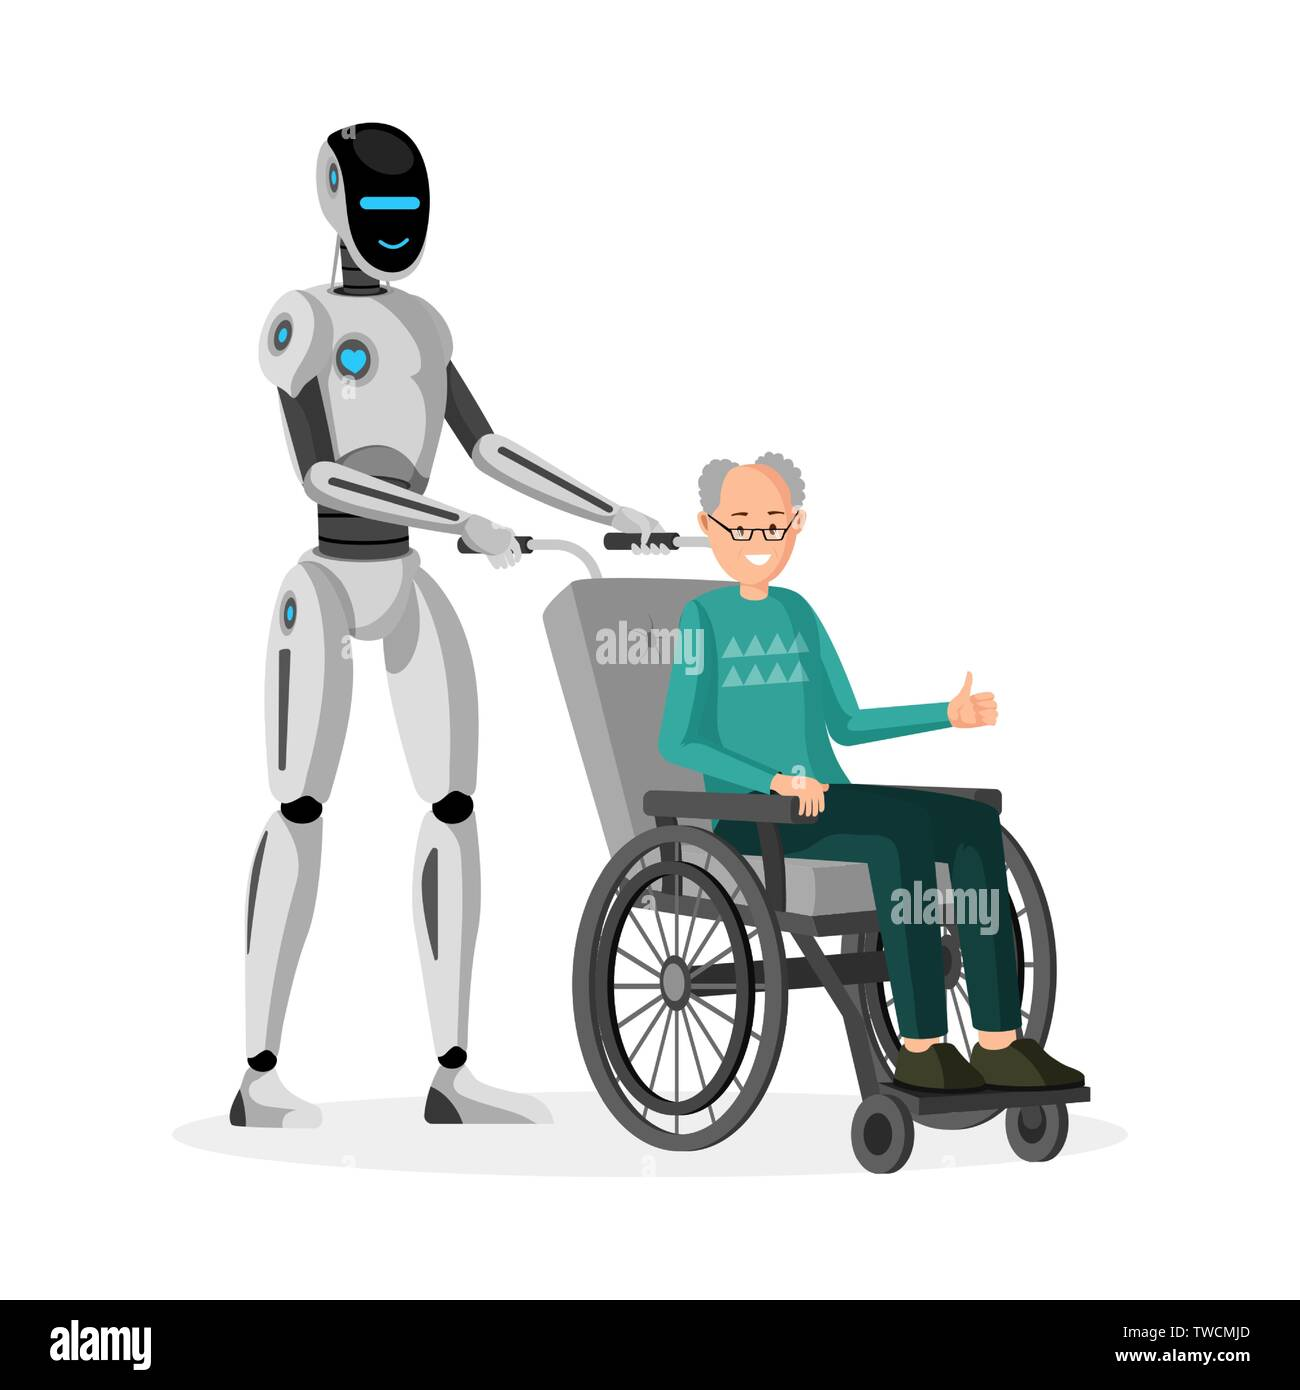 Robot with disabled man flat vector illustration  Cyborg